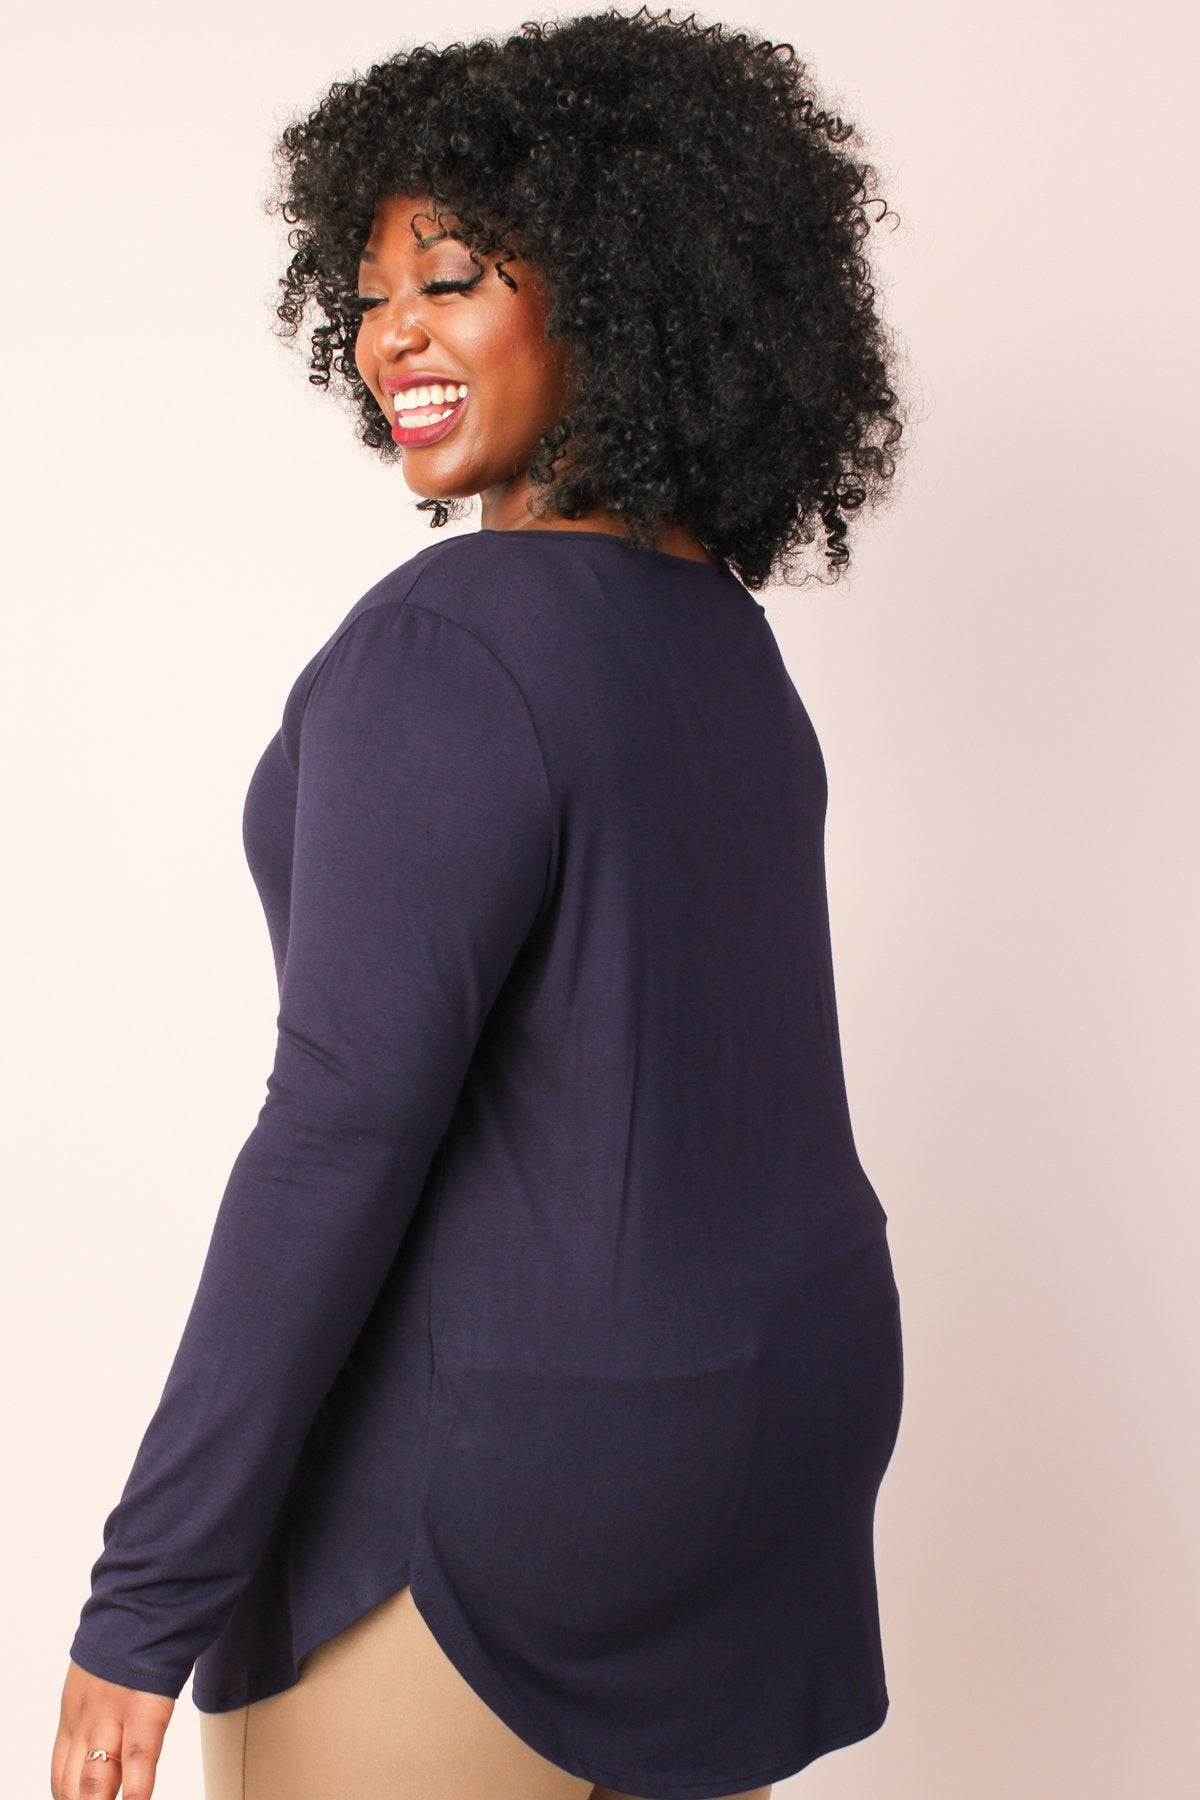 S+ Basics Jersey Tunic with Crisscross Neck - Navy